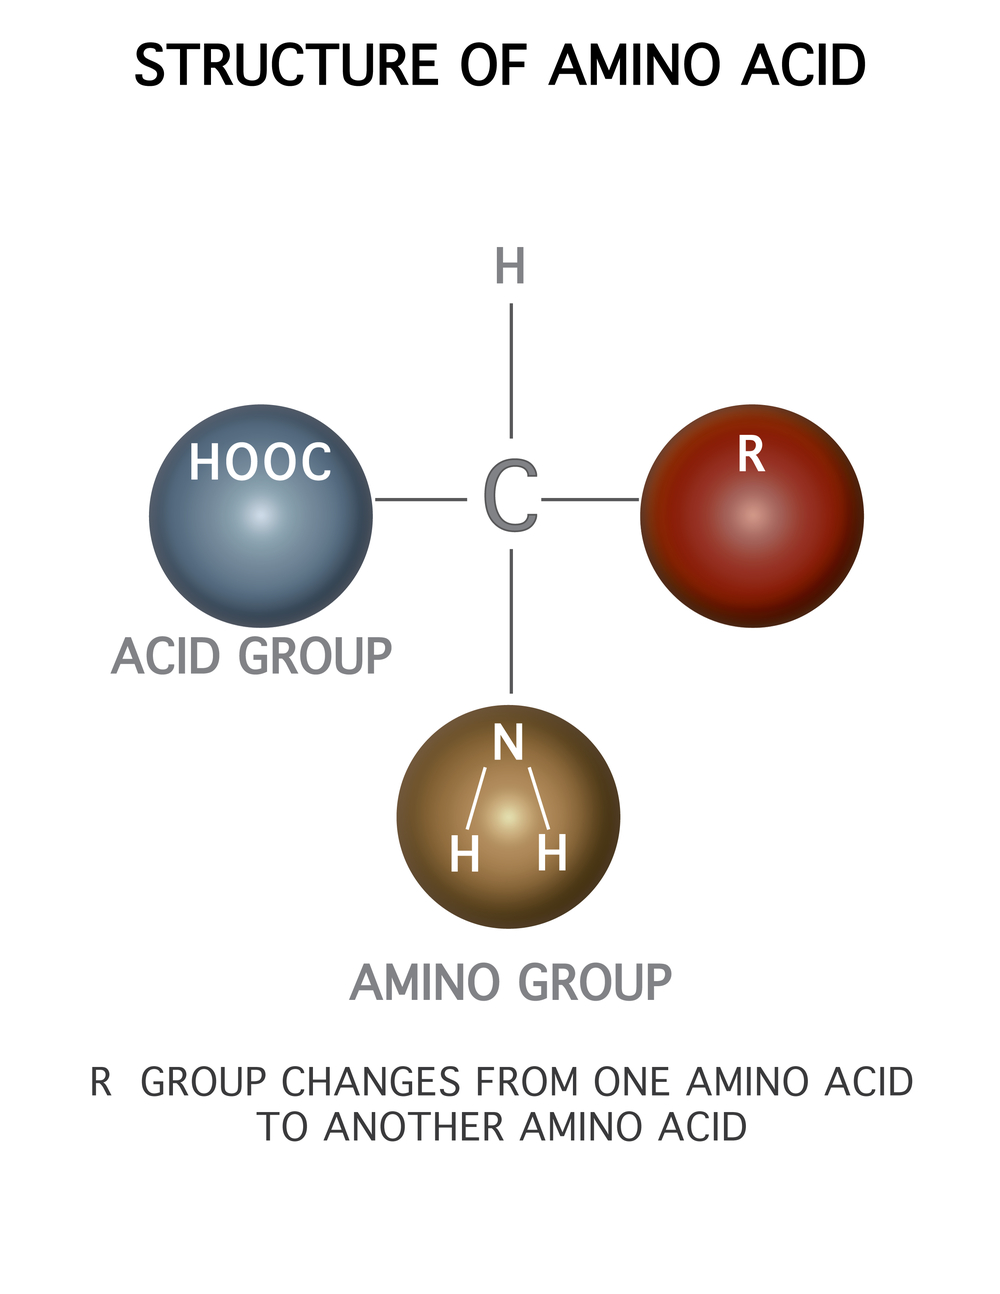 Structure of amino acid